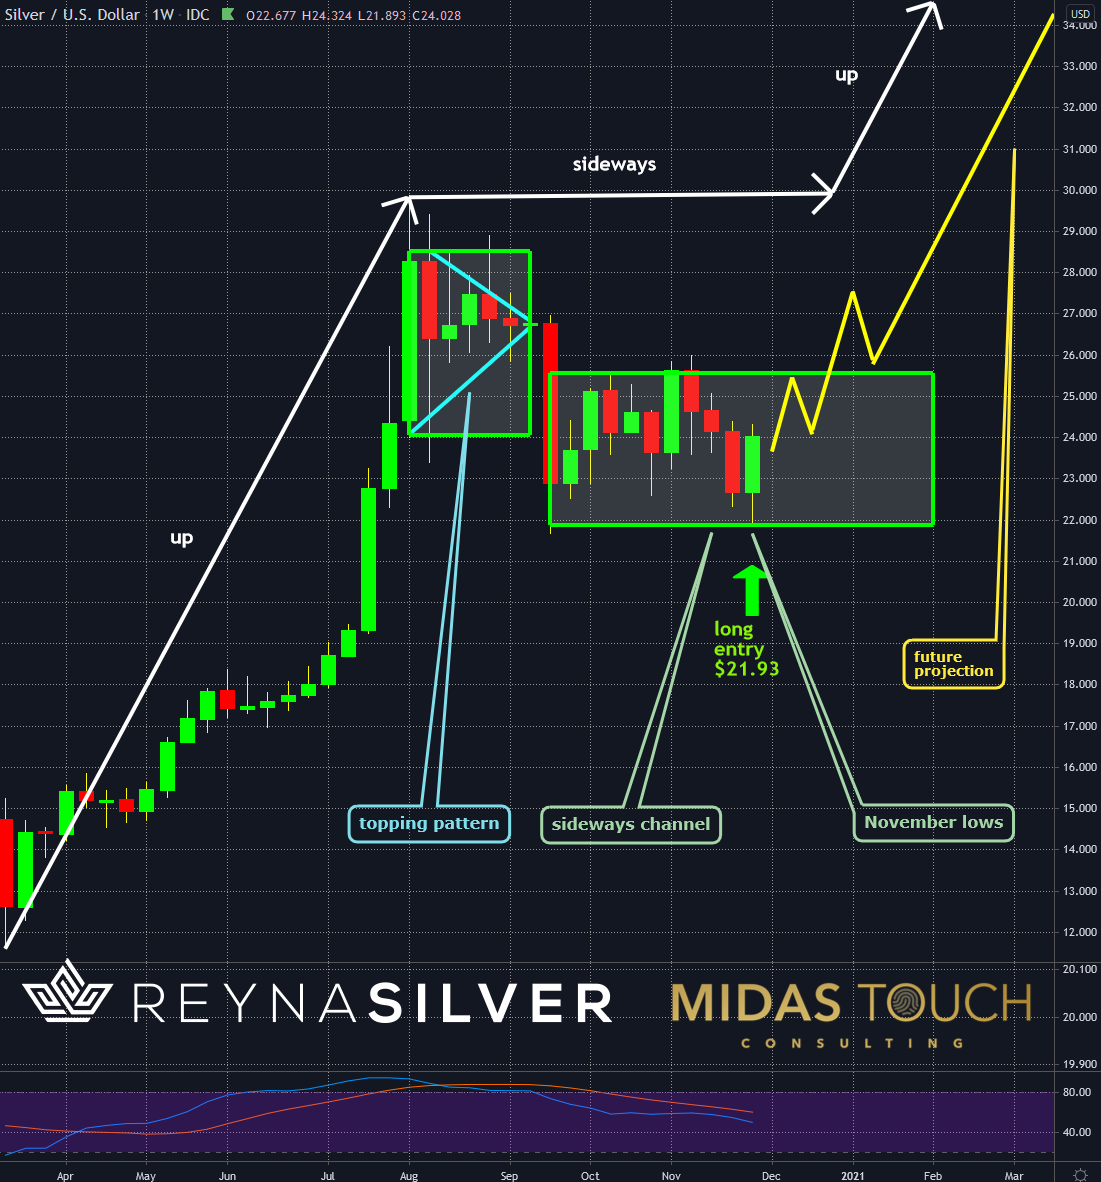 Silver in US Dollar, weekly chart as of December 3rd, 2020